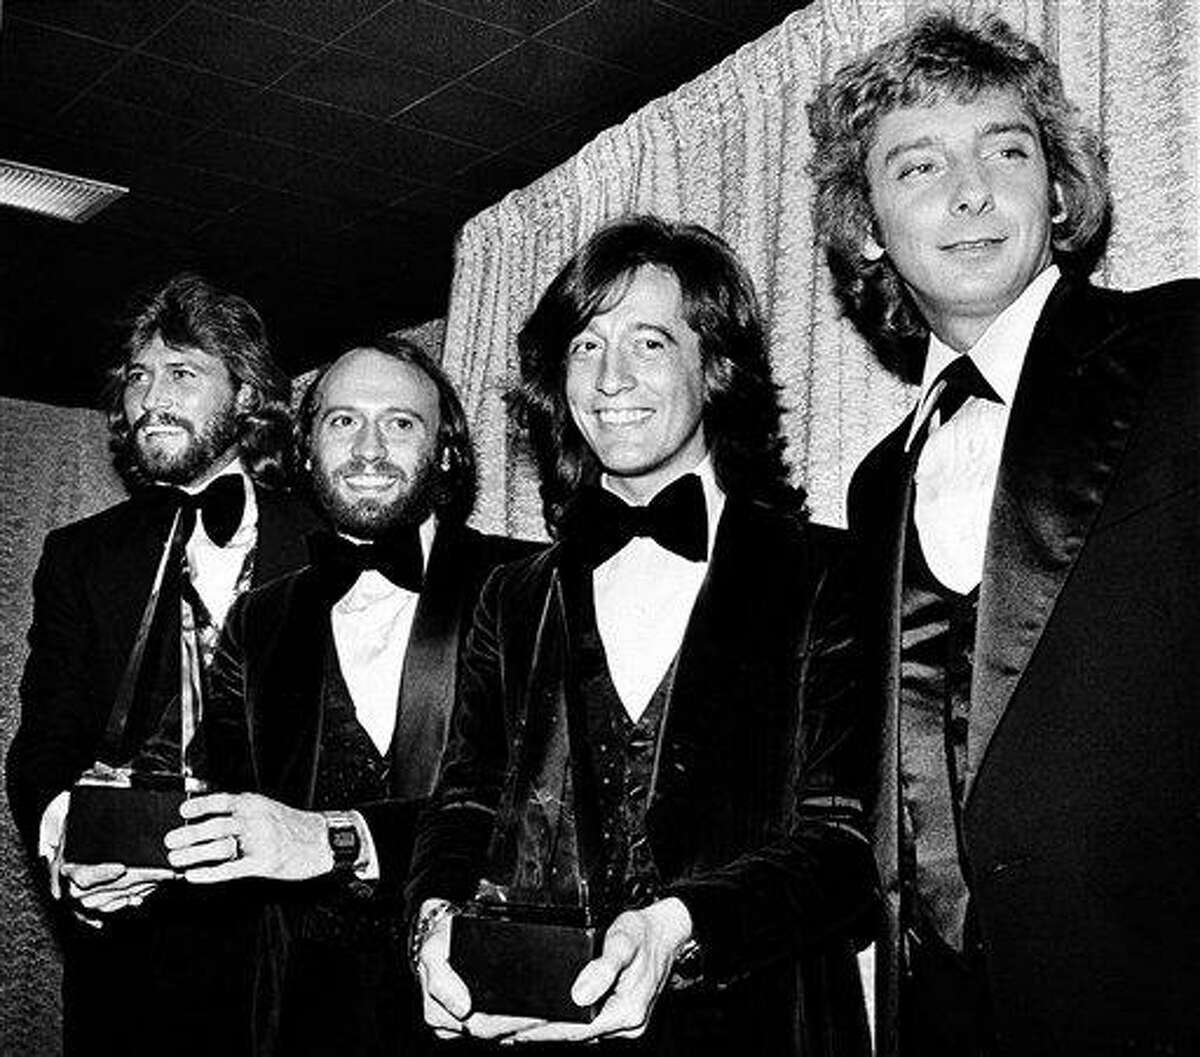 """In this Friday, Jan. 13, 1979 file photo, members of the Bee Gees pose with Barry Manilow, far right, at the American Music Awards in Los Angeles, Ca. The brothers Gibb, from left, Barry, Maurice, and Robin, won awards for favorite popular group and favorite soul album for """"Saturday Night Fever."""" A representative said on Sunday, May 20, 2012, that Robin Gibb has died. He was 62. (AP Photo/Nick Ut, File)"""